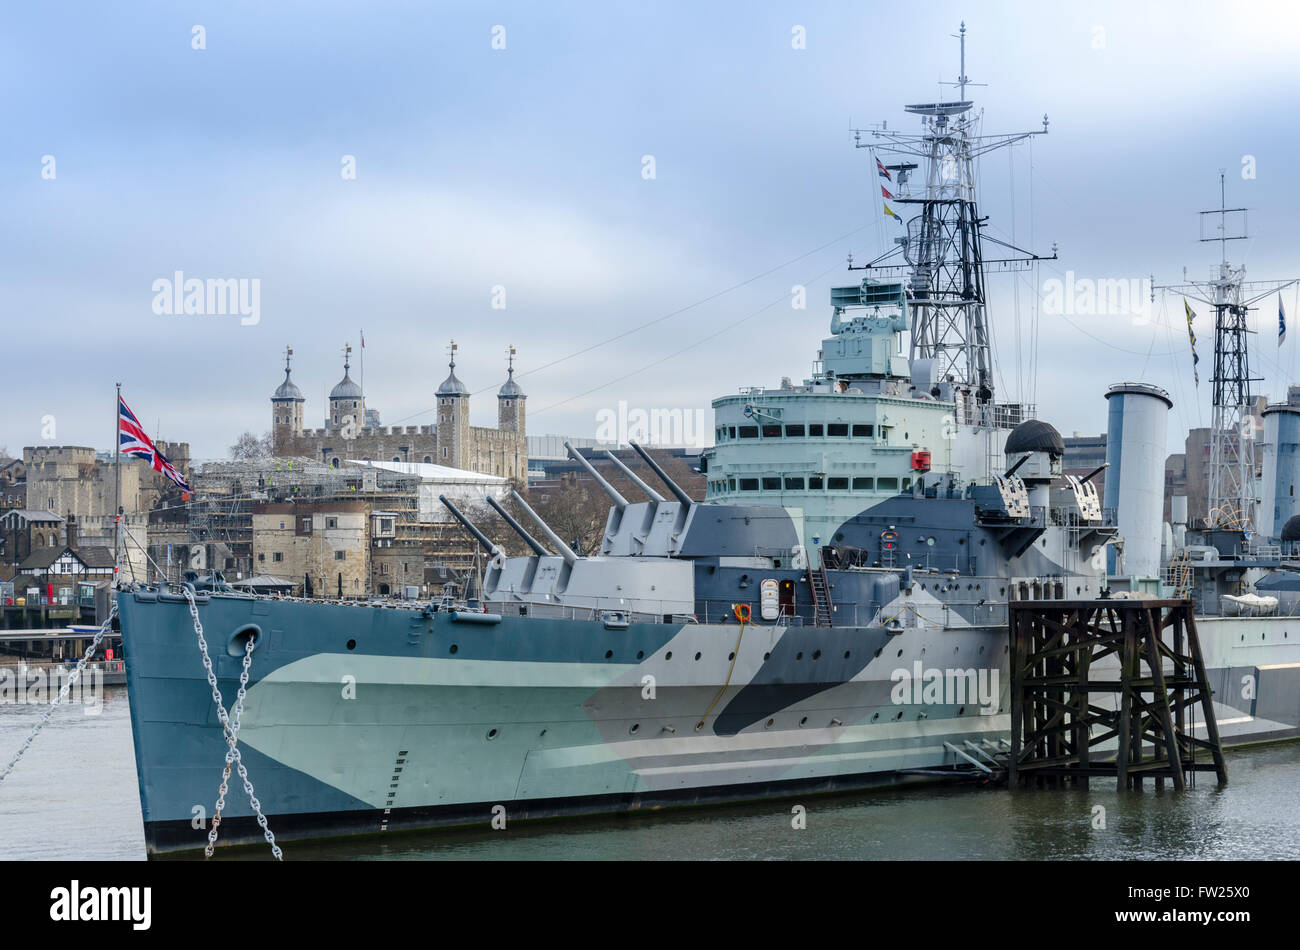 HMS Belfast with Tower of London in background. London, UK - Stock Image